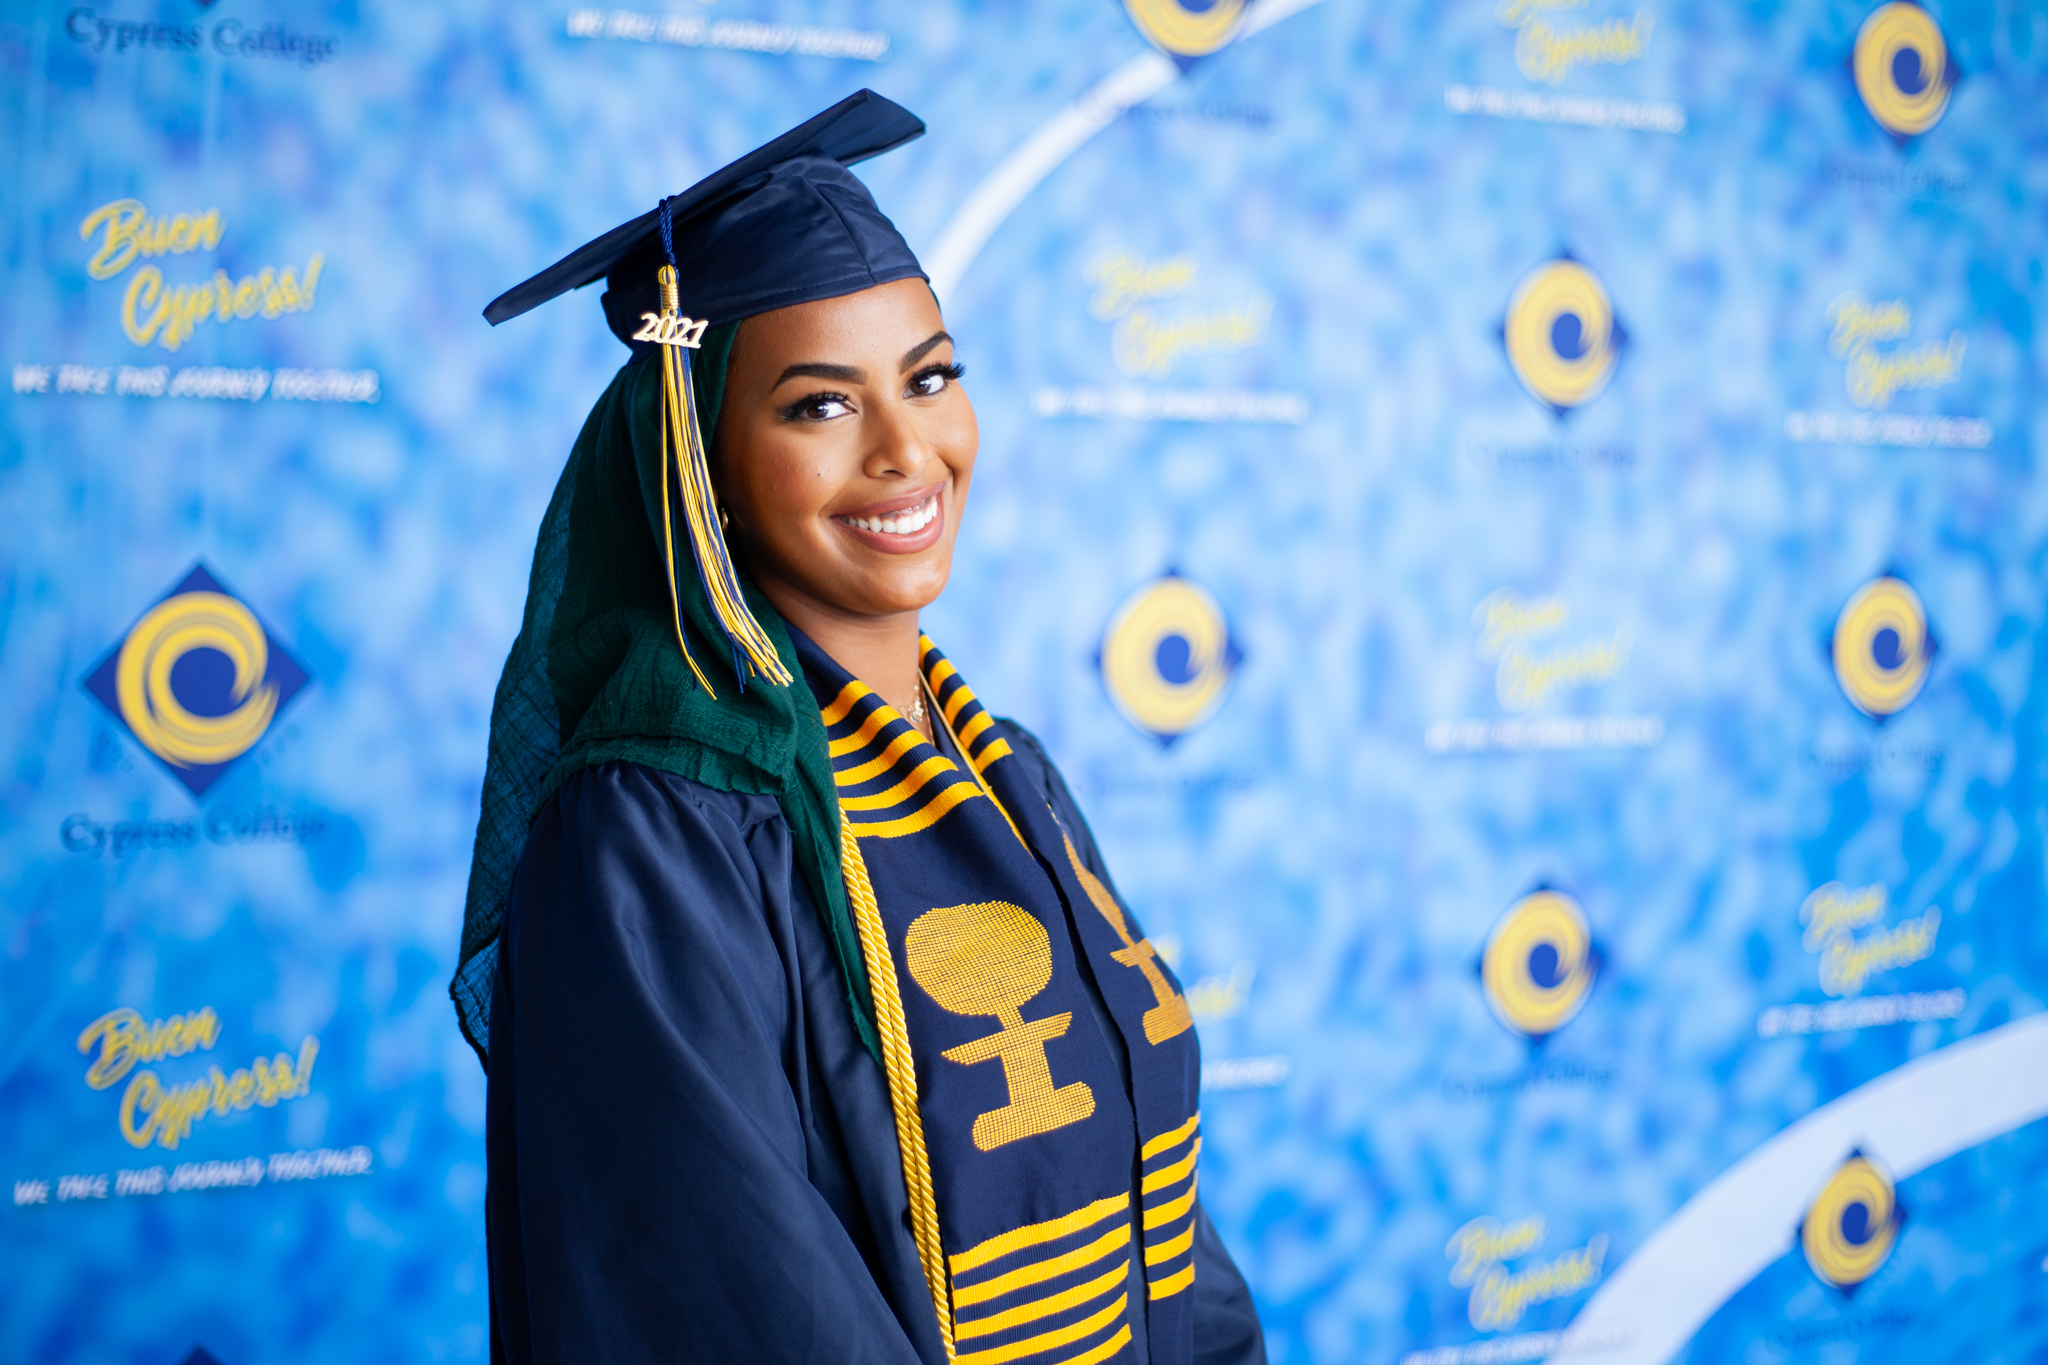 Counseling student Ayah Said poses in front of blue background with Legacy Program sash.